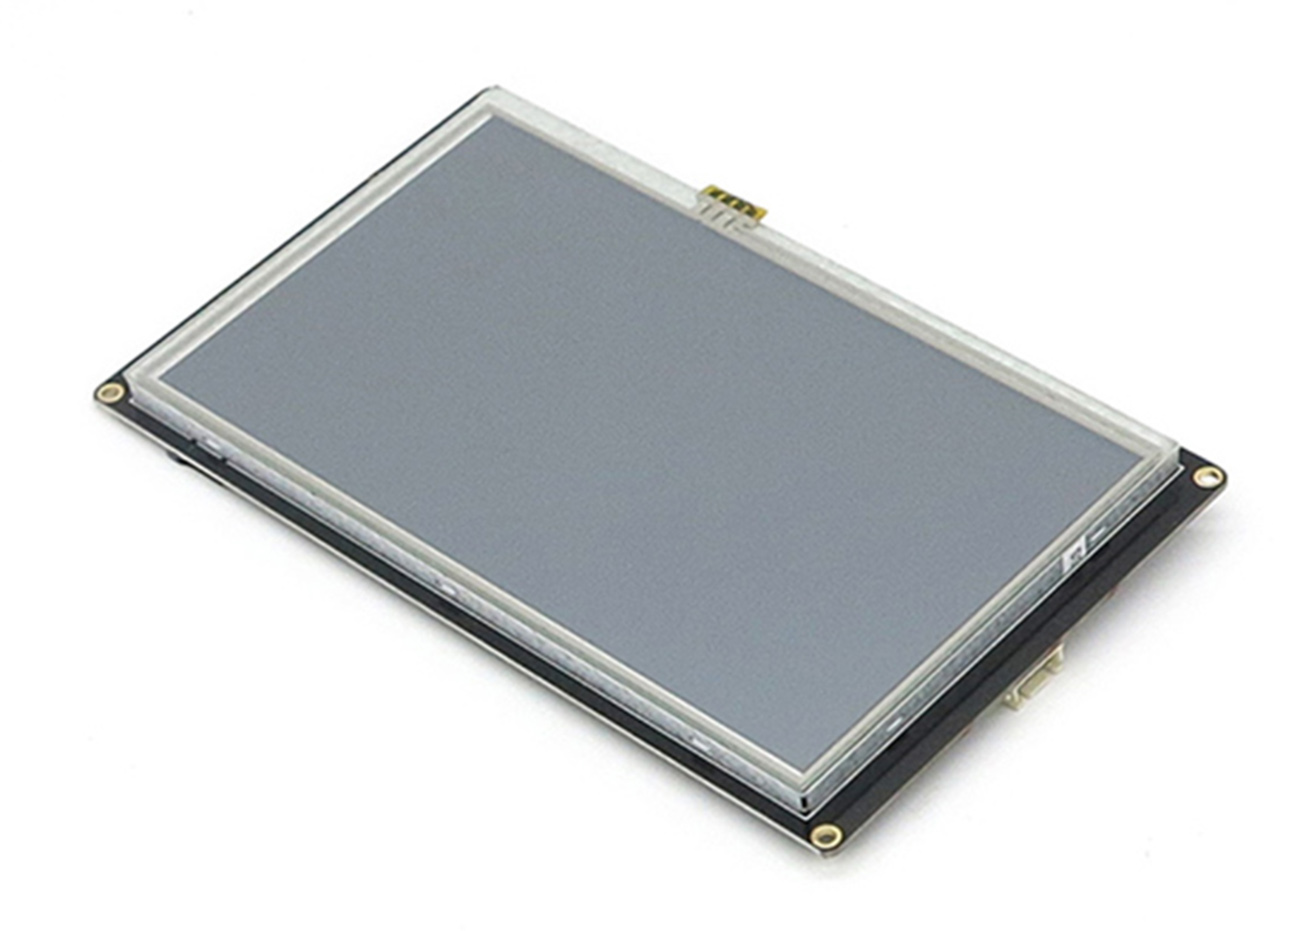 Nextion K7.0 Enhanced HMI Intelligent Smart USART UART Serial Touch TFT LCD Module Display Panel For Raspberry Pi NX8048K070-in LCD Modules from Electronic Components & Supplies